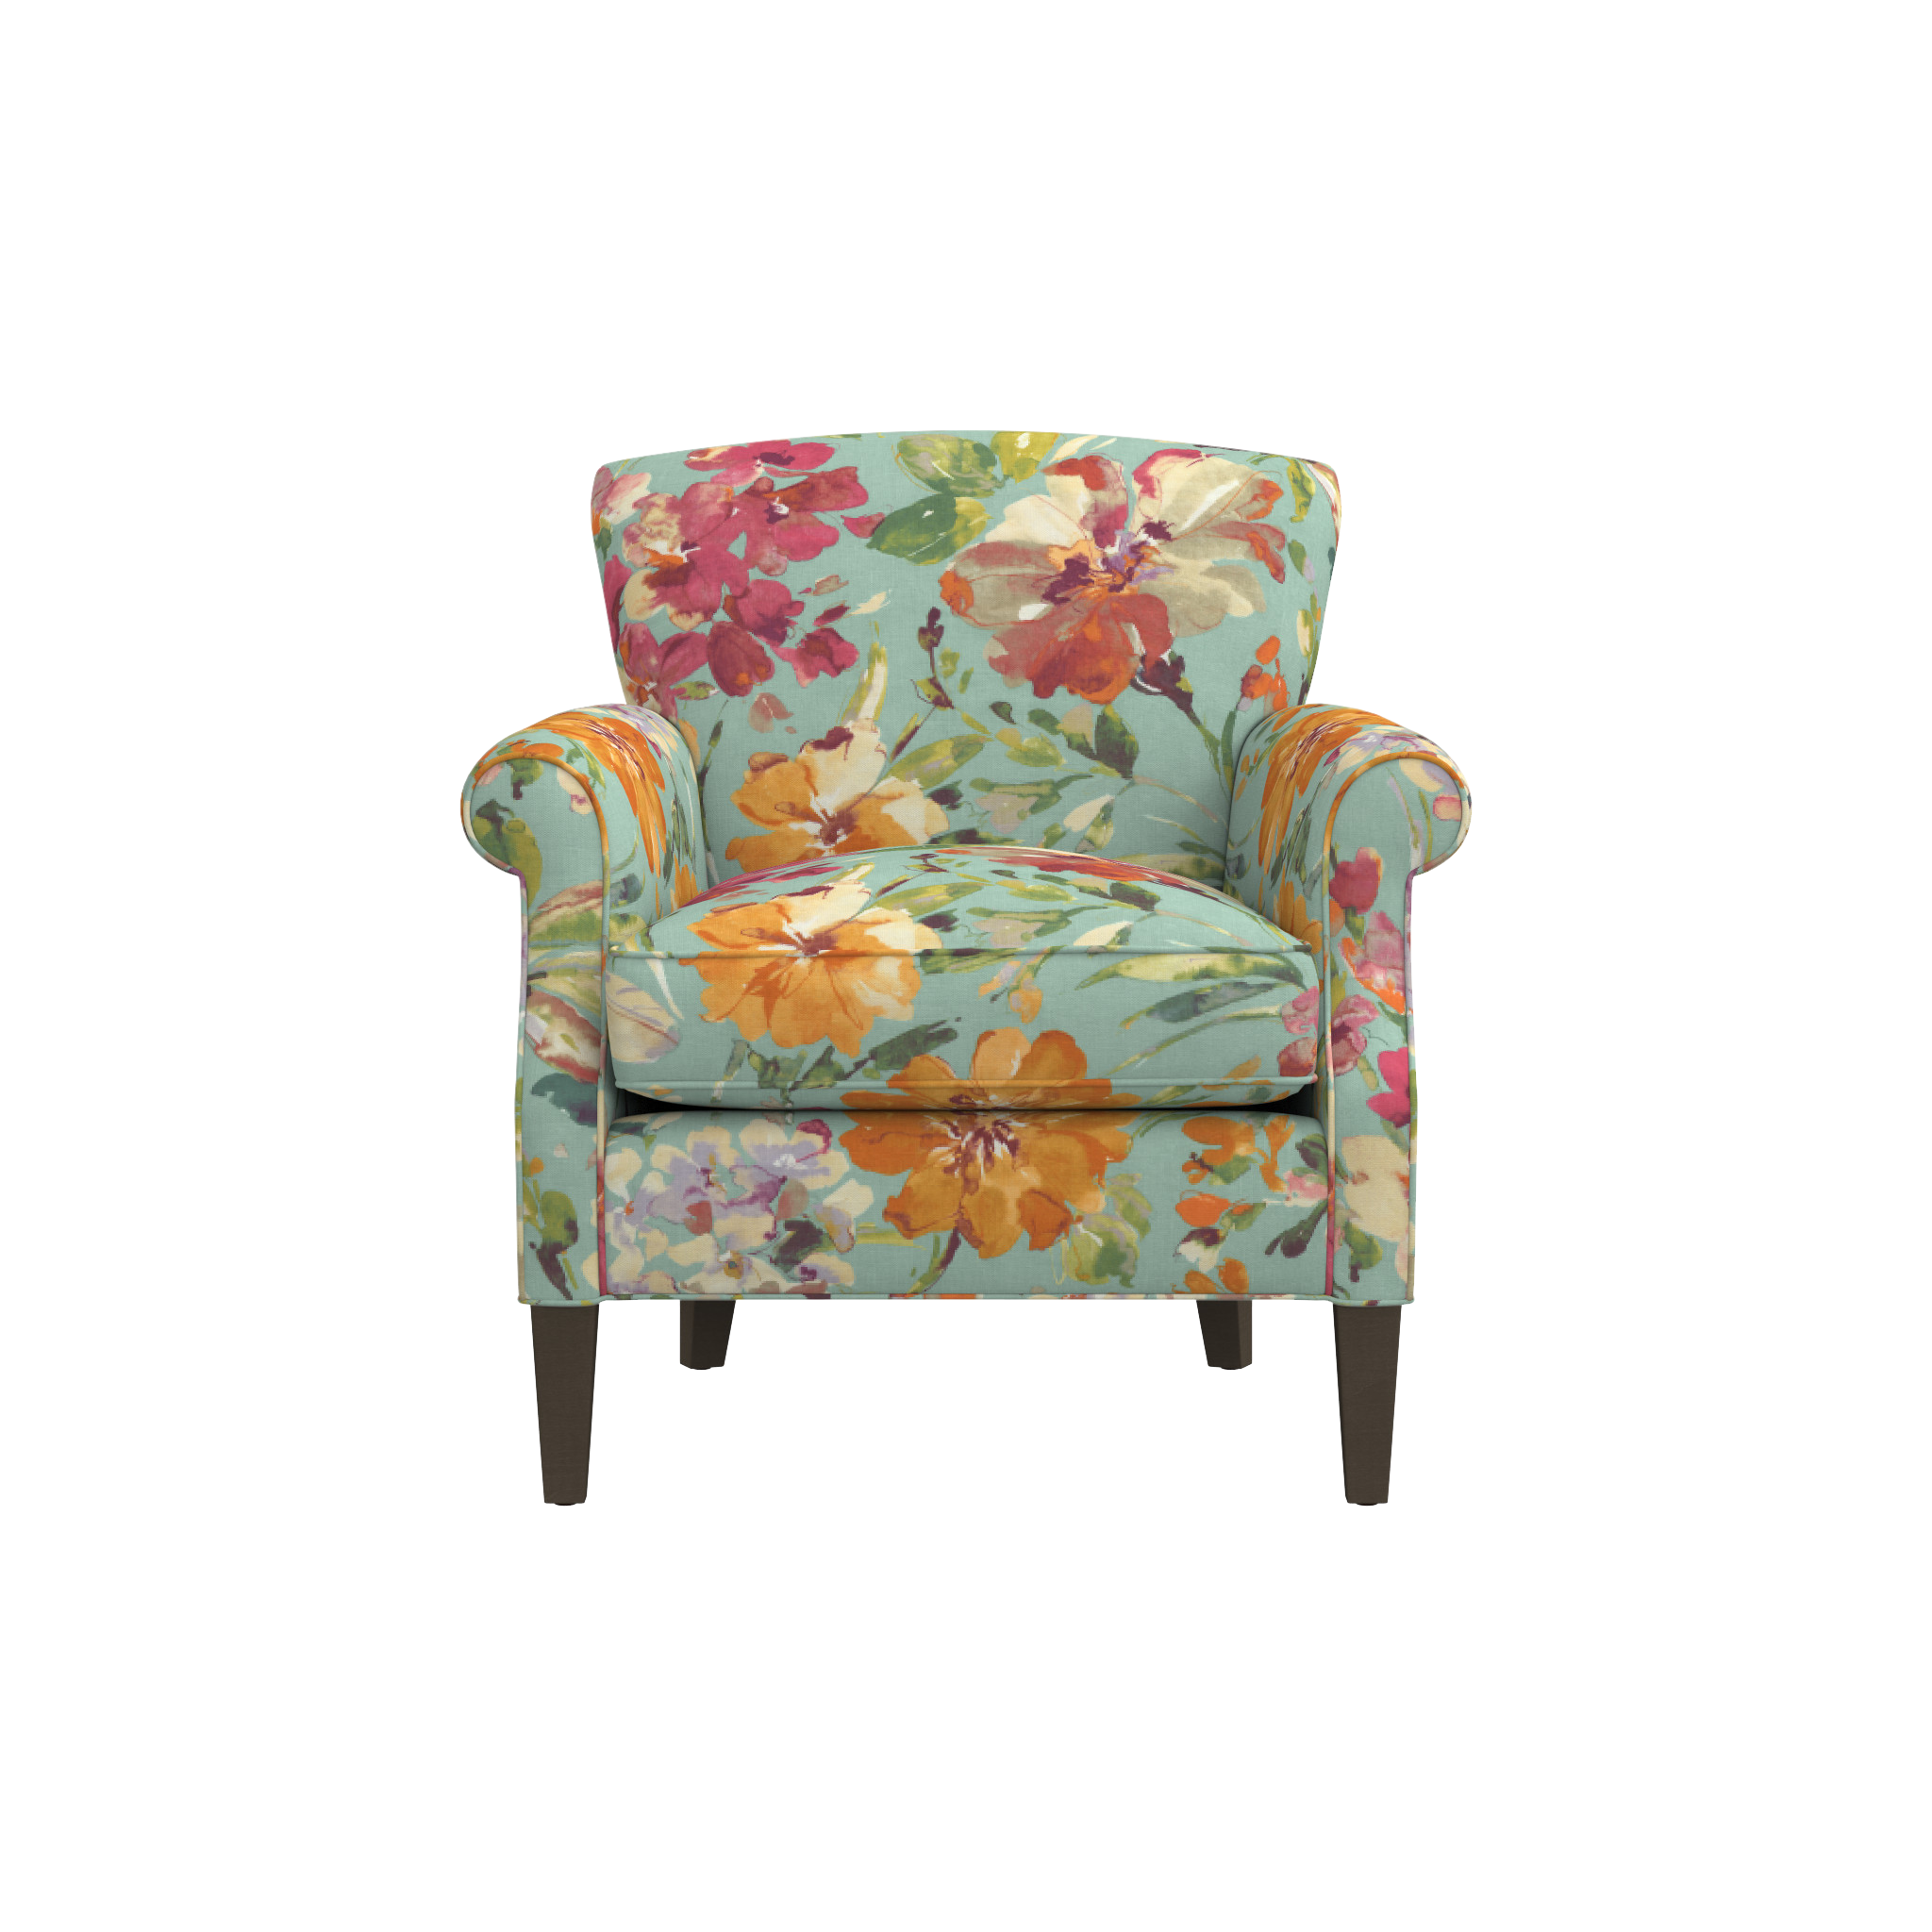 Shop Elyse Floral Accent Chair Beautiful Scaled Up Blooms Update